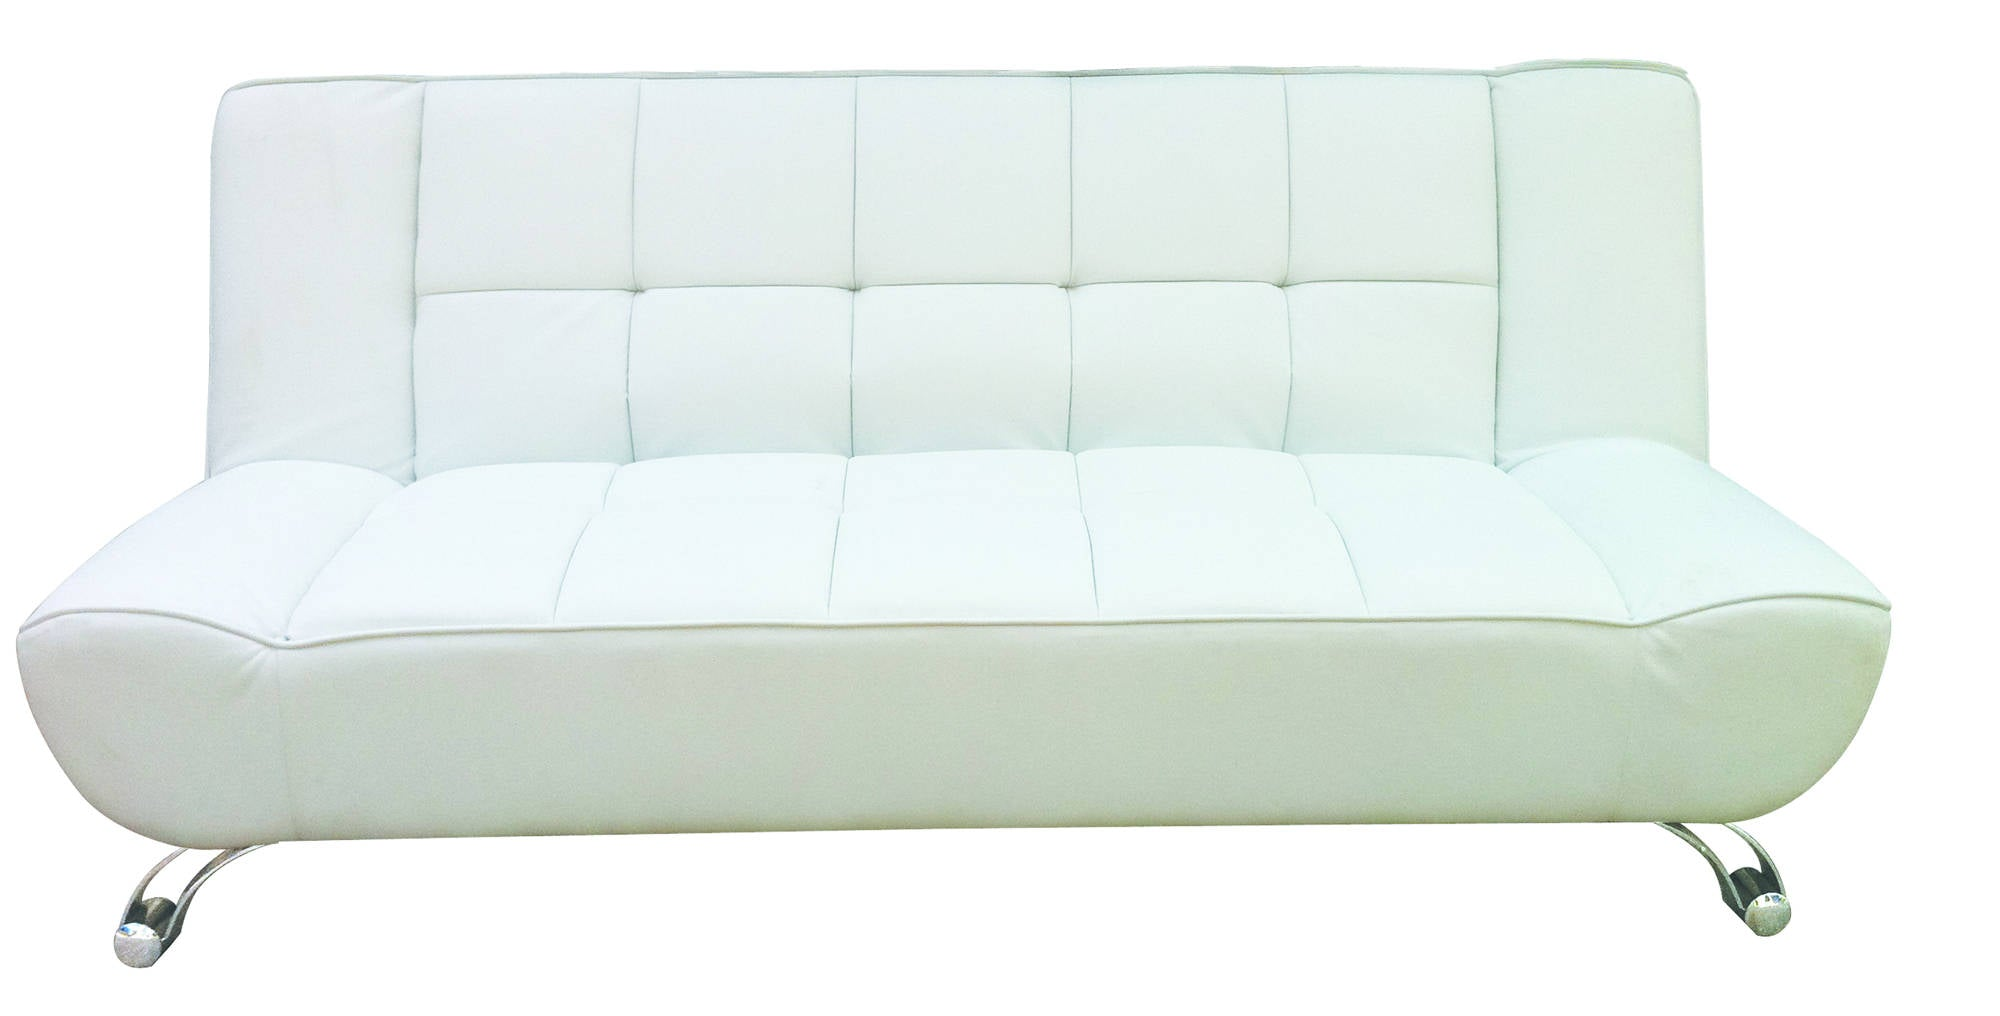 Dernier Sofa Bed in White - Ezzo